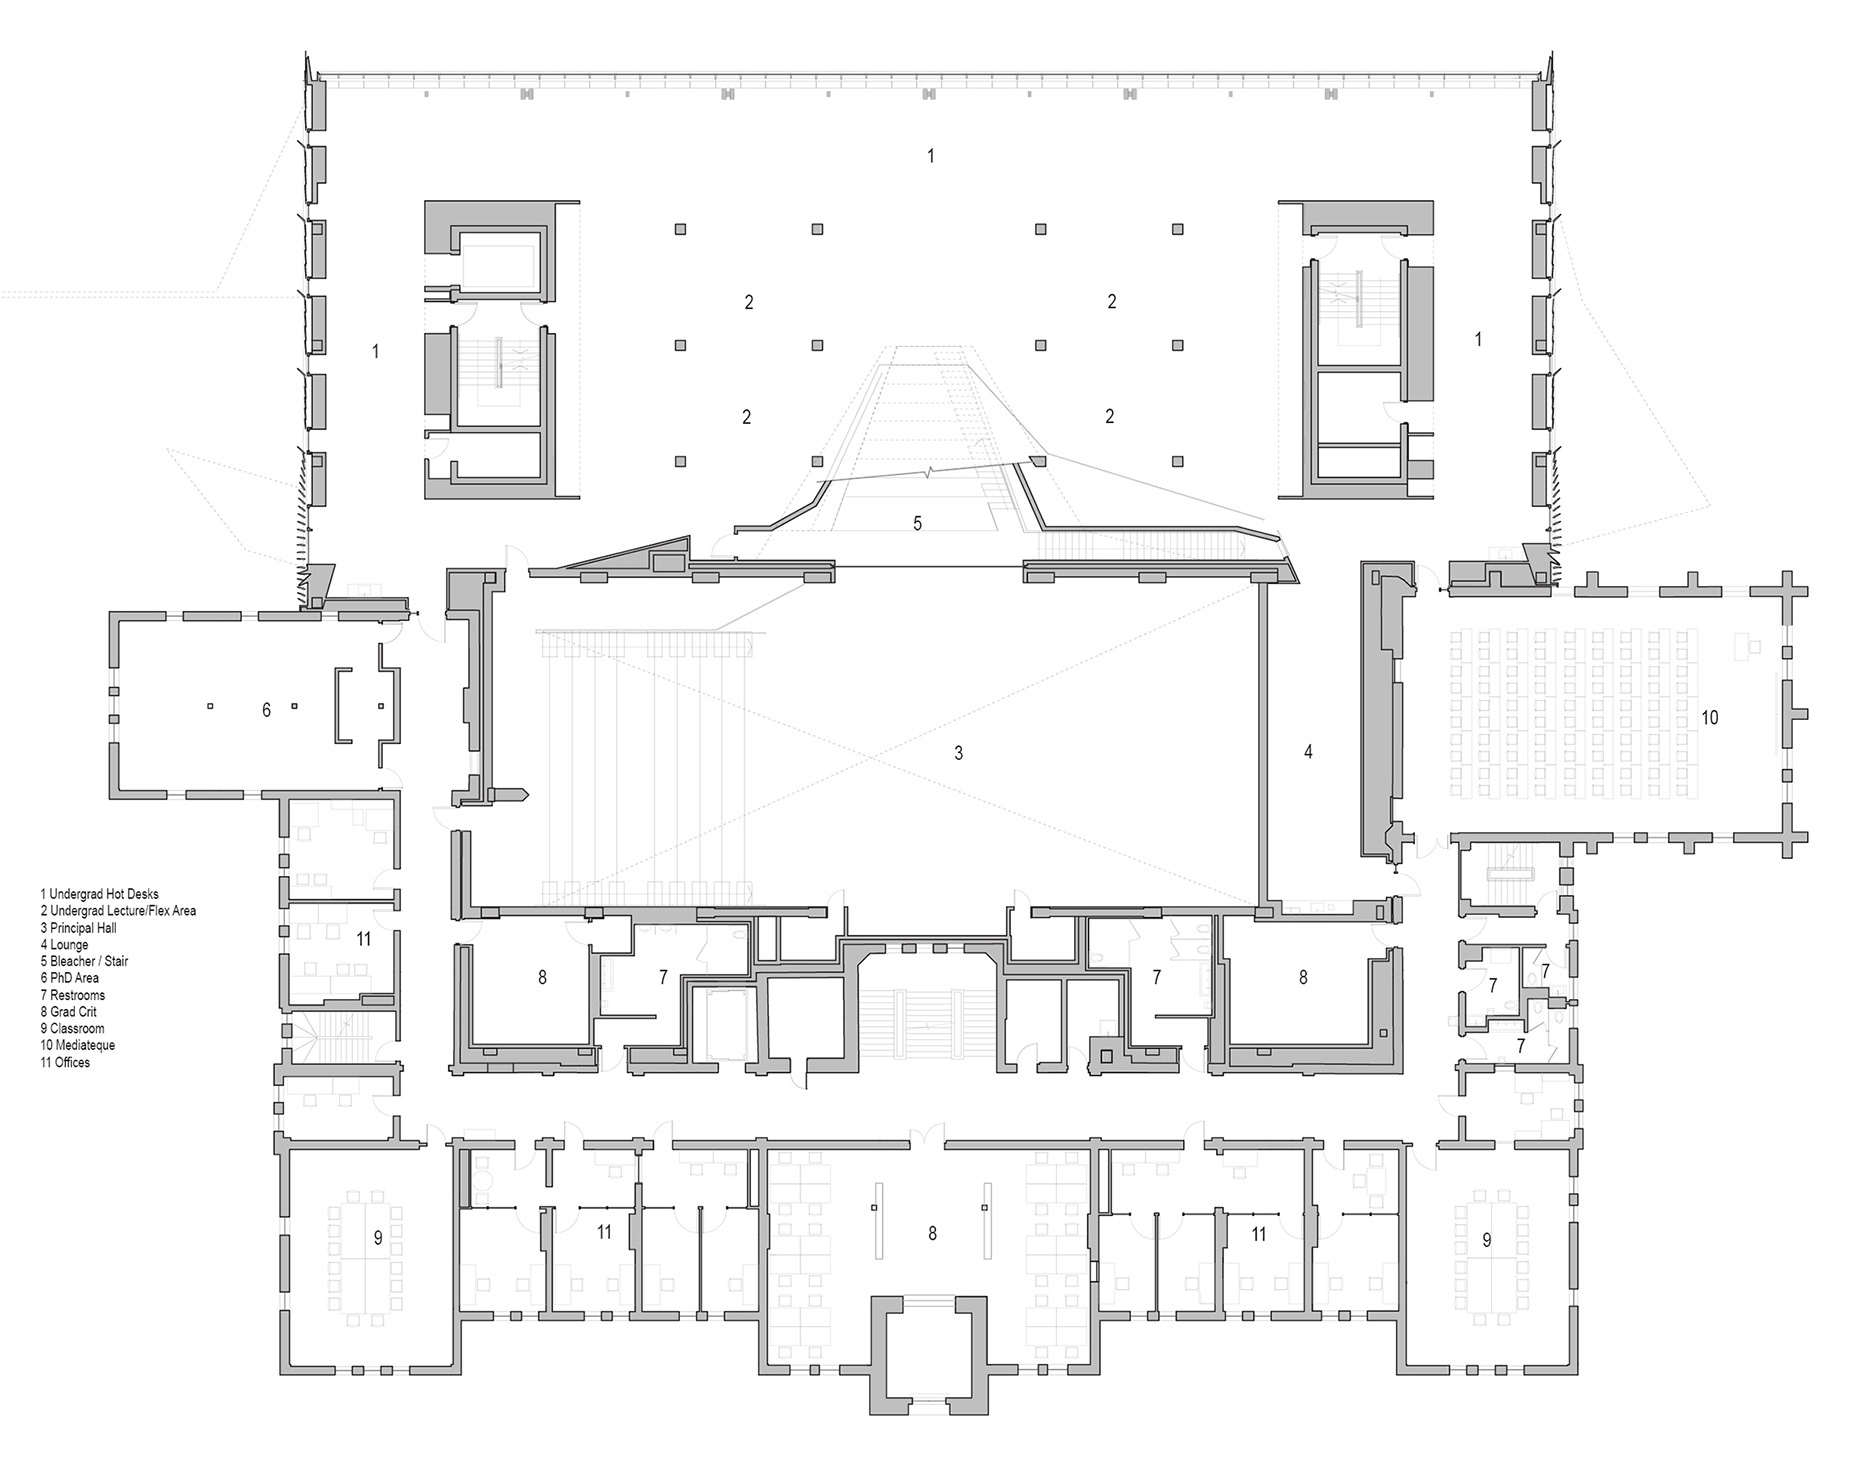 Plan - Level 2 | Daniels Faculty of Architecture | NADAAA architects | Canada | STIRworld